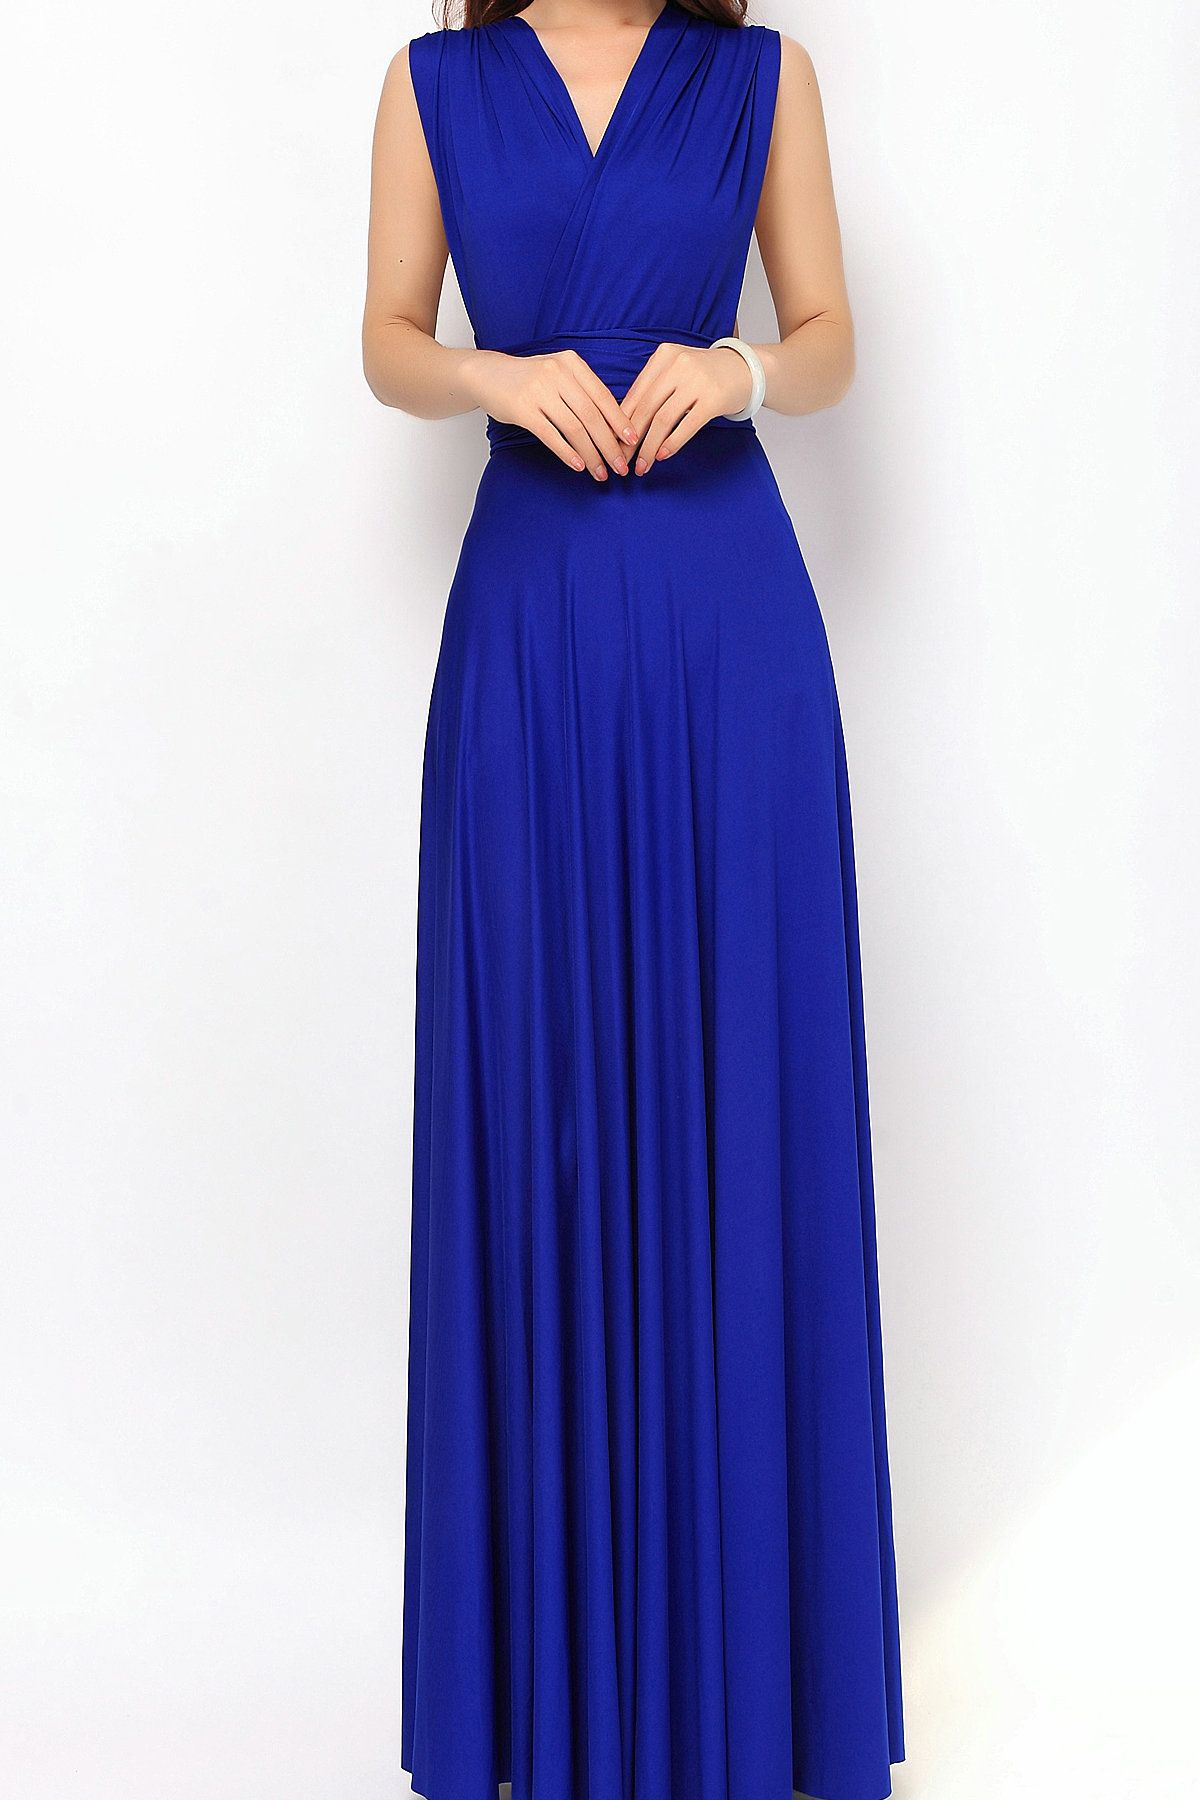 Royal blue maxi bridesmaid dresses infinity dress convertible dr royal blue maxi bridesmaid dresses infinity dress convertible dr lg 23 7380 ombrellifo Gallery